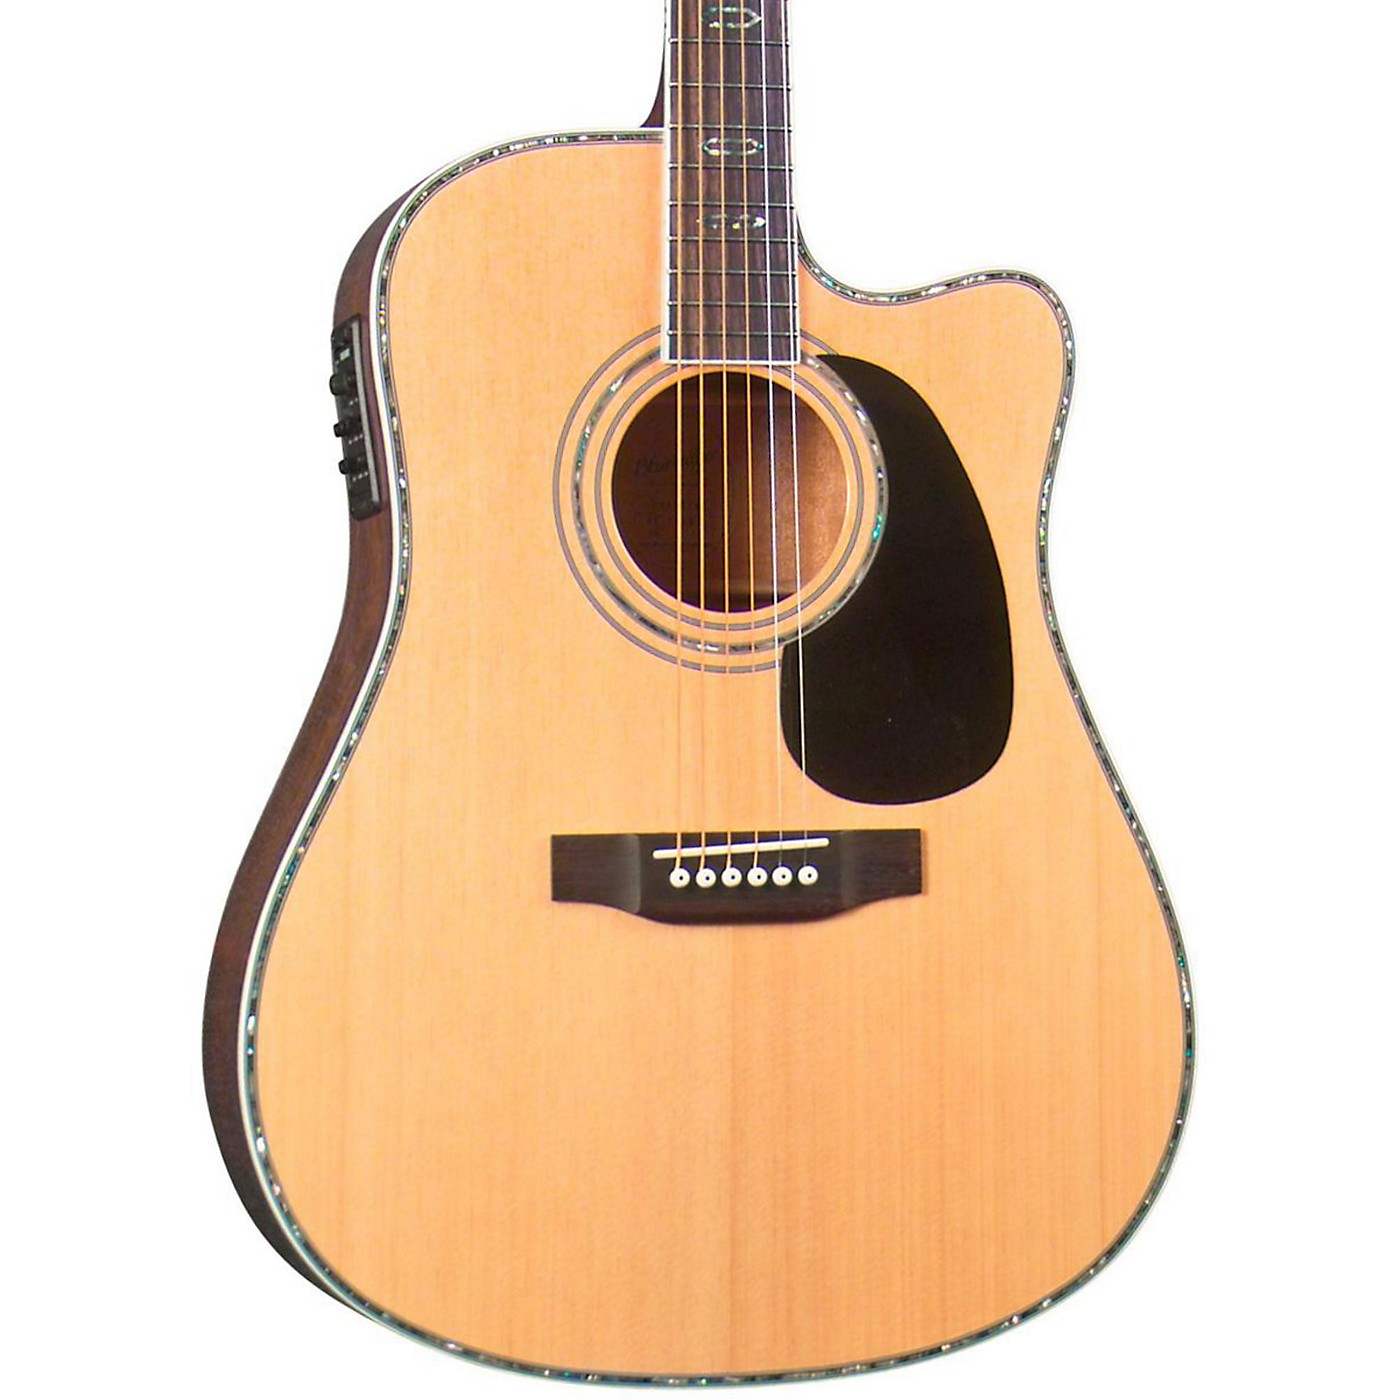 Blueridge BR-70CE Cutaway Acoustic-Electric Dreadnought Guitar thumbnail